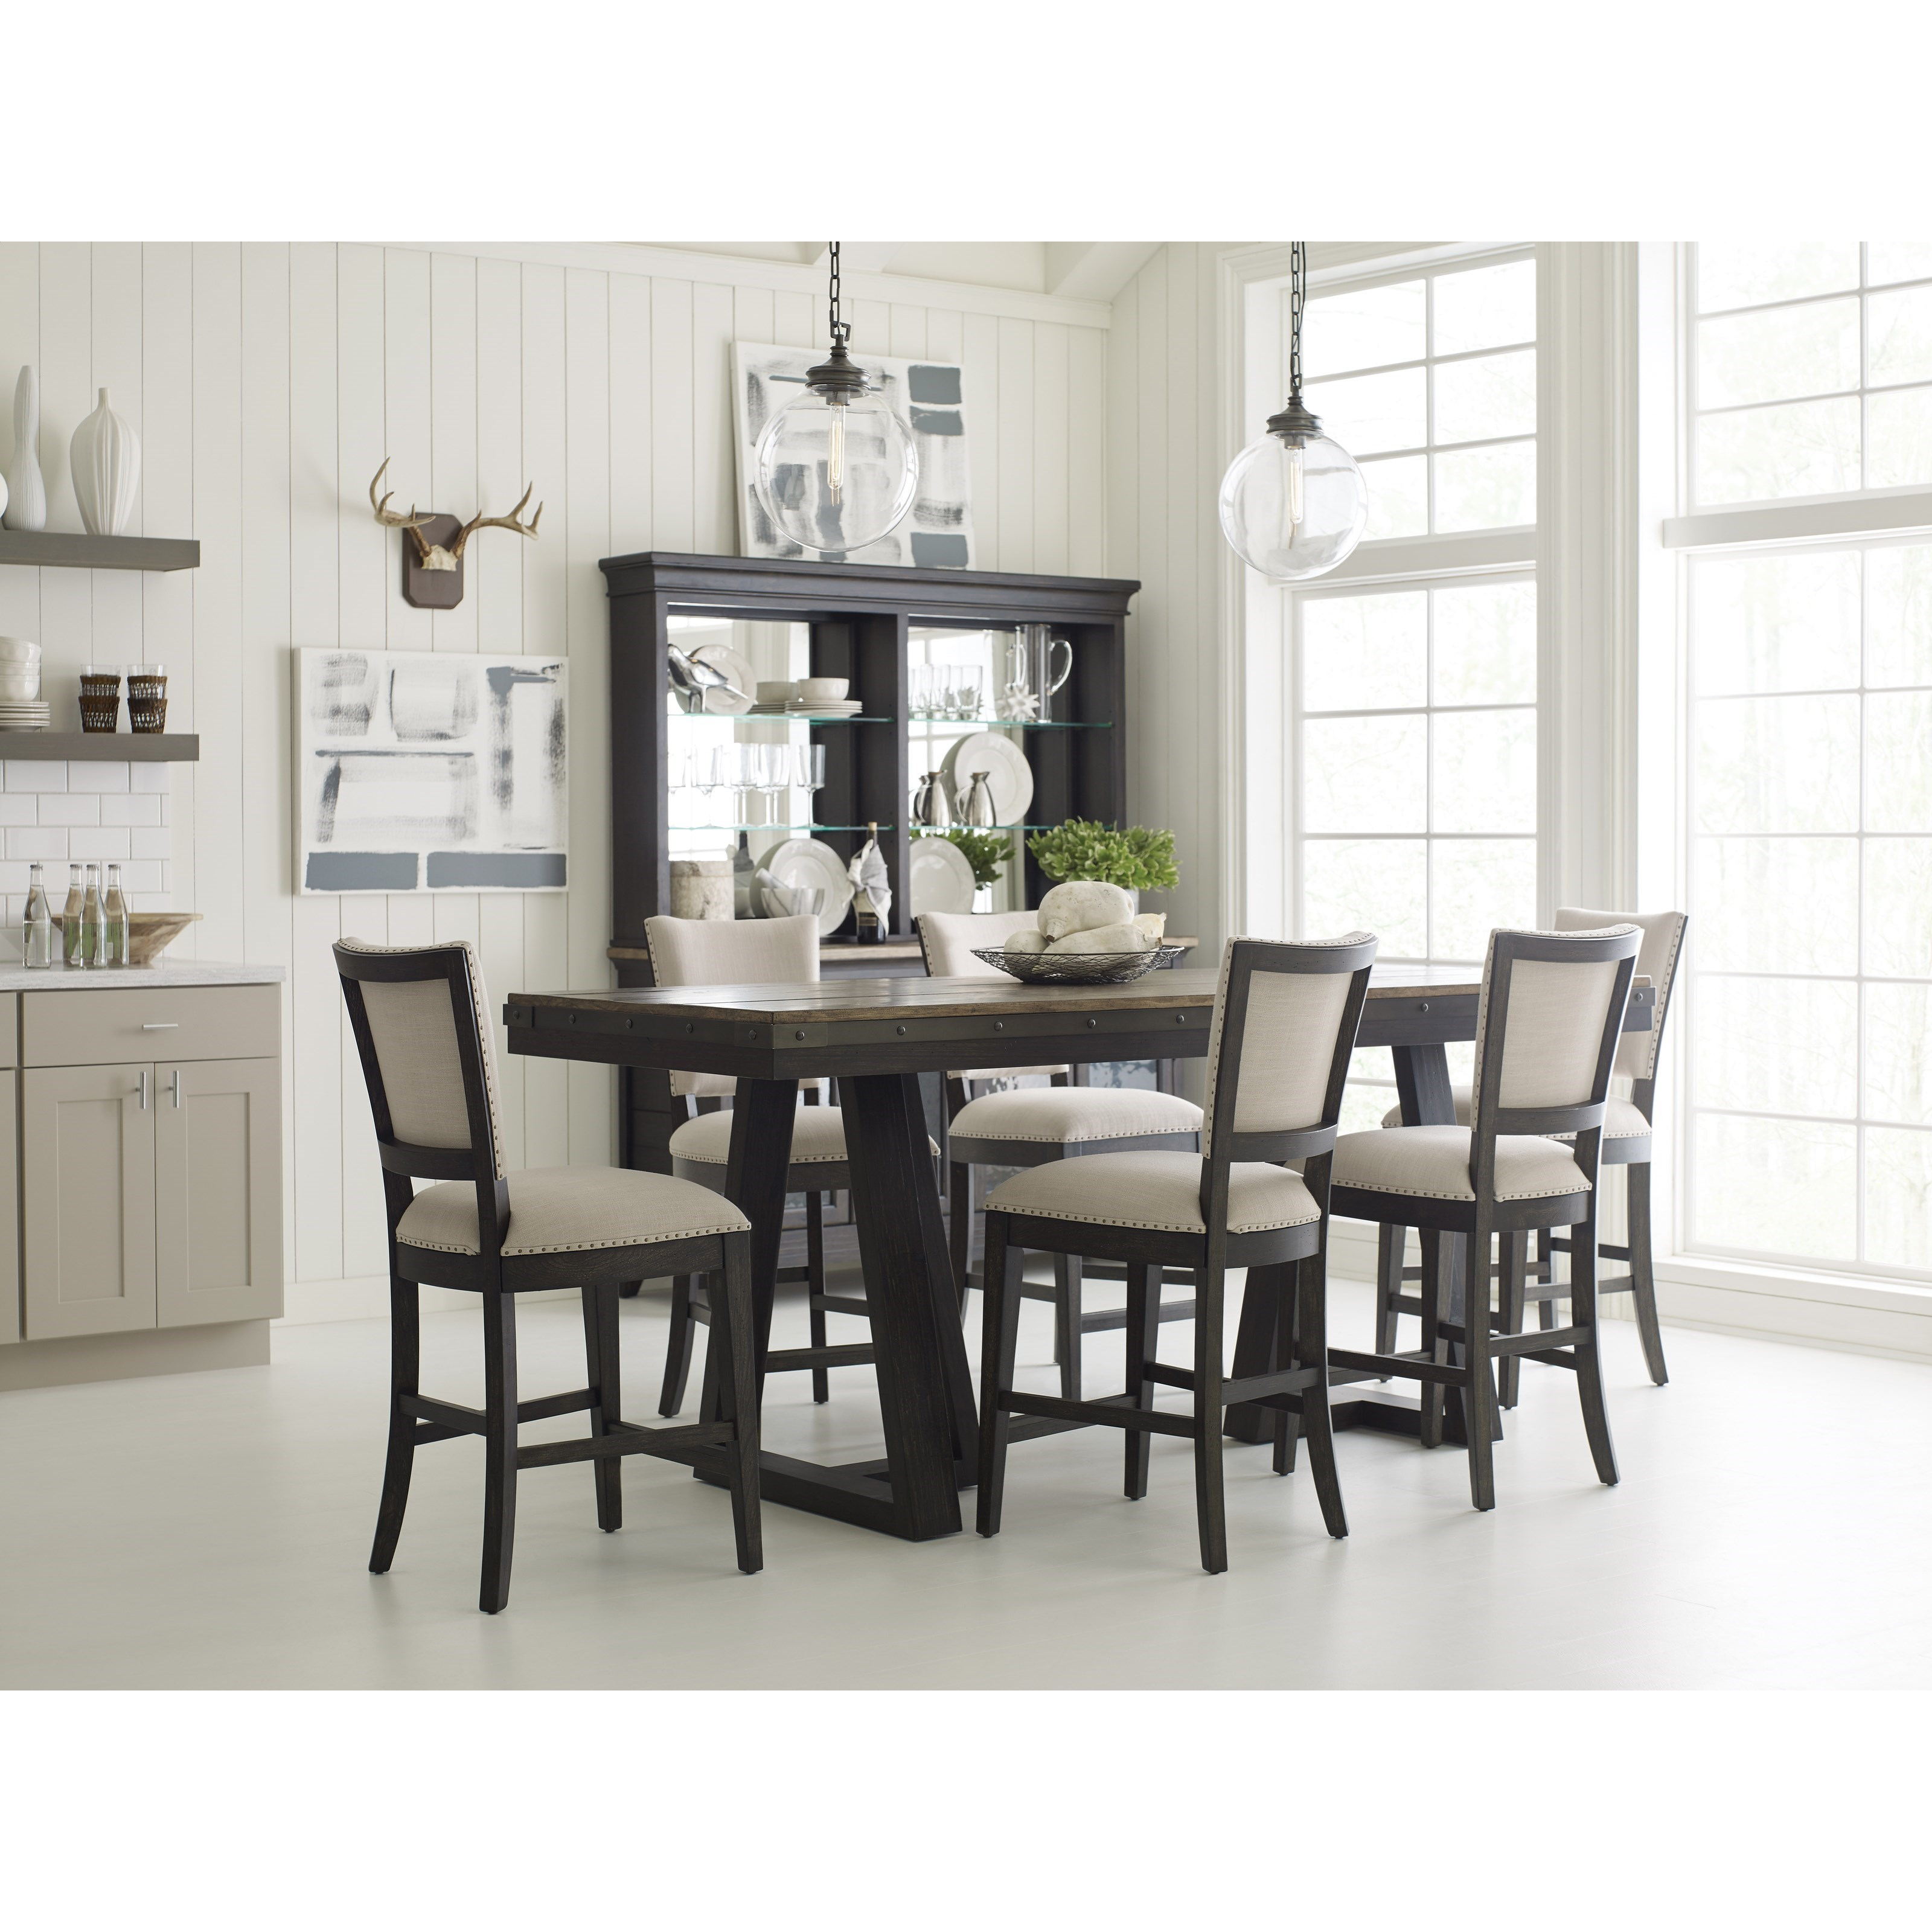 Kincaid Dining Room Set: Kincaid Furniture Plank Road Casual Counter Height Dining Room Set